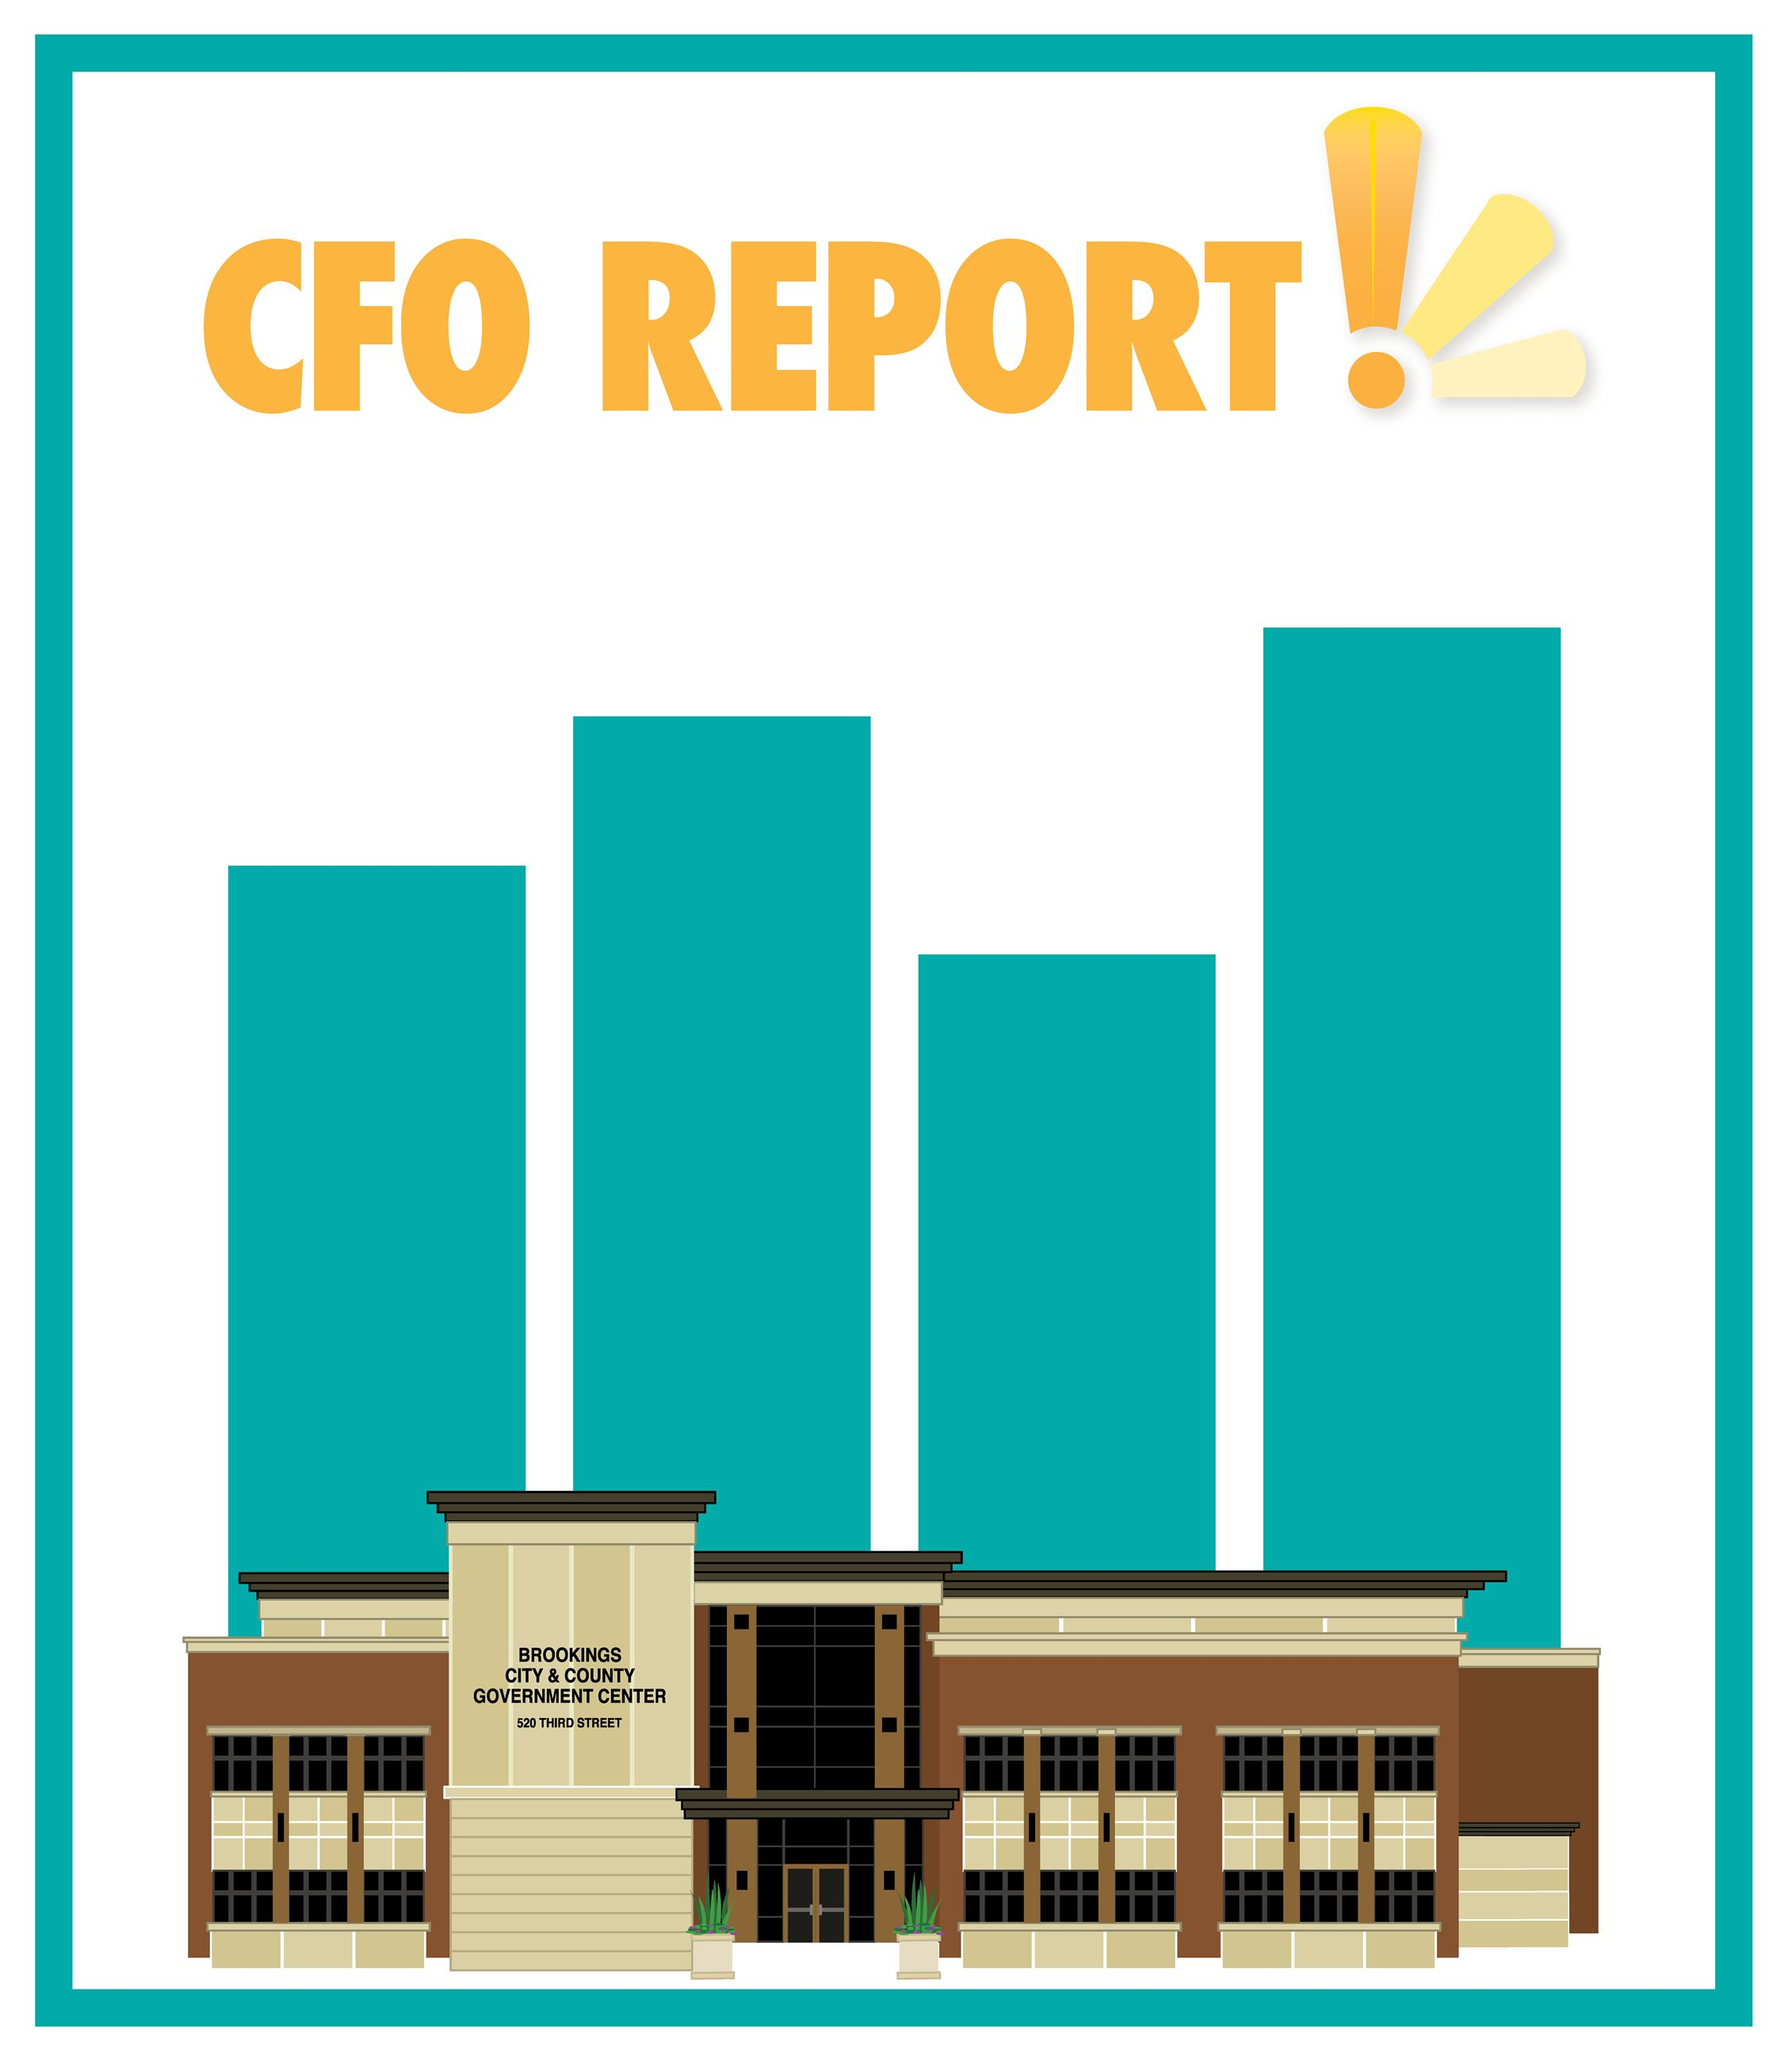 CFO REPORT: A graphic of a generic bar chart without numbers stands behind a illustration of the Cit